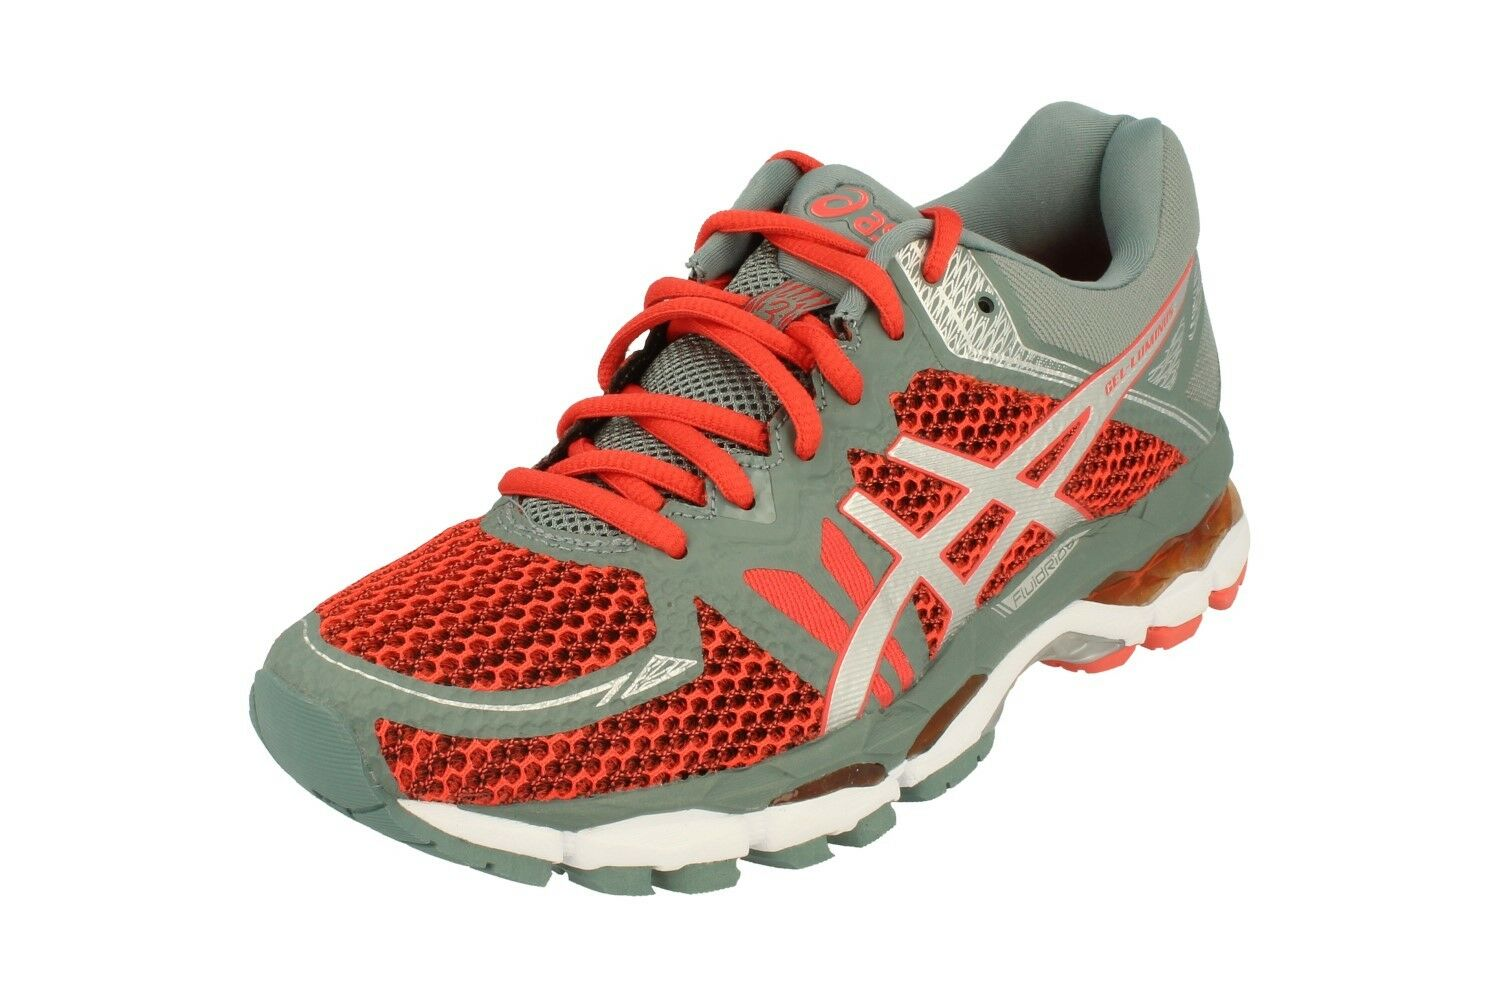 Asics Gel-Luminus 3 Womens Running Trainers T76Sq Sneakers shoes 3001